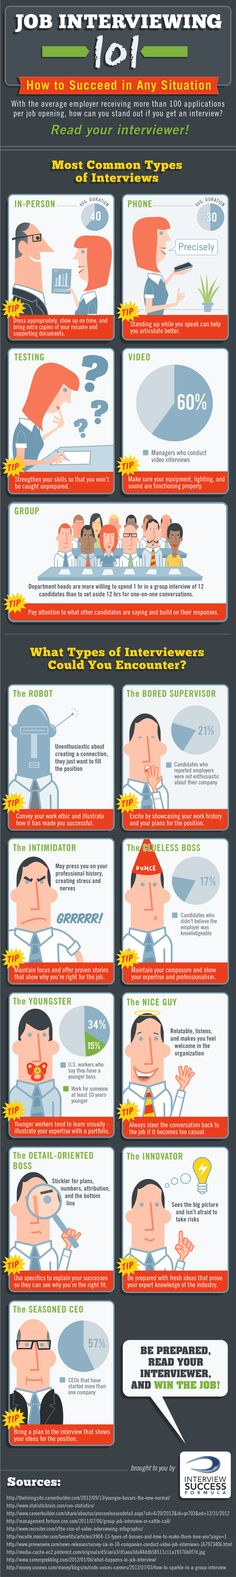 How to Succeed in Different Situations. #Job #interviews #careers